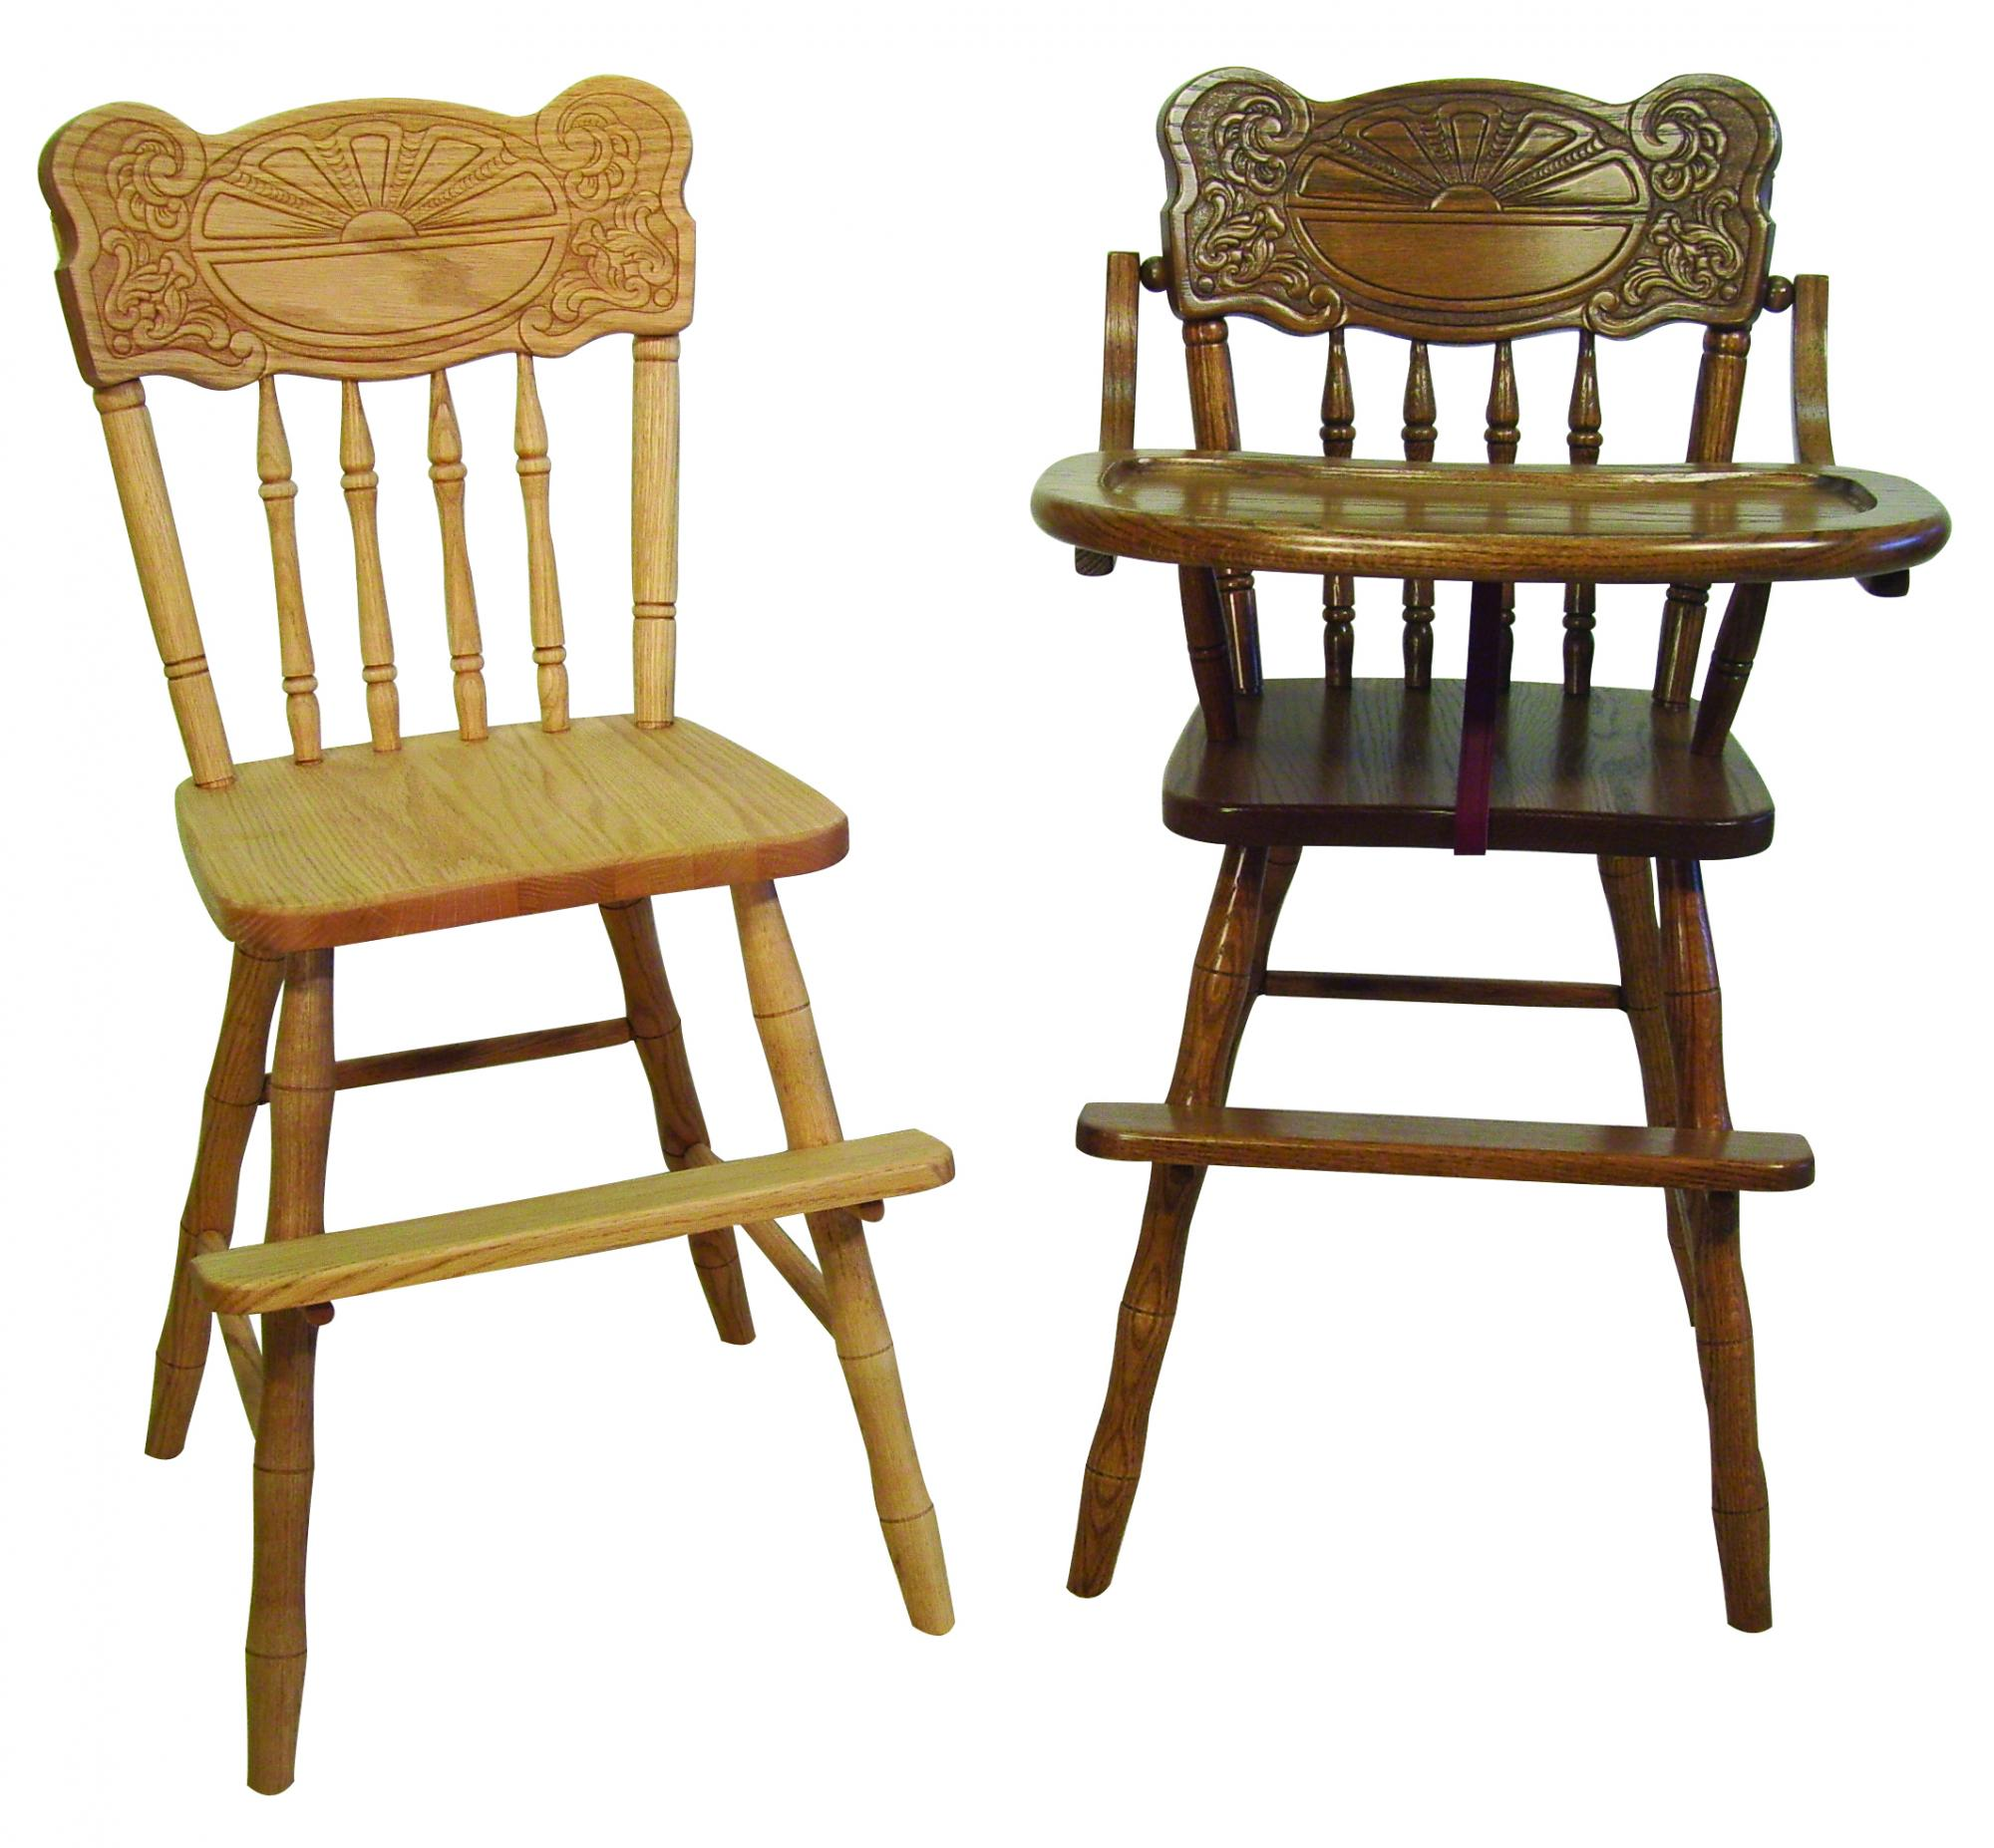 Child's Chair and High Chair